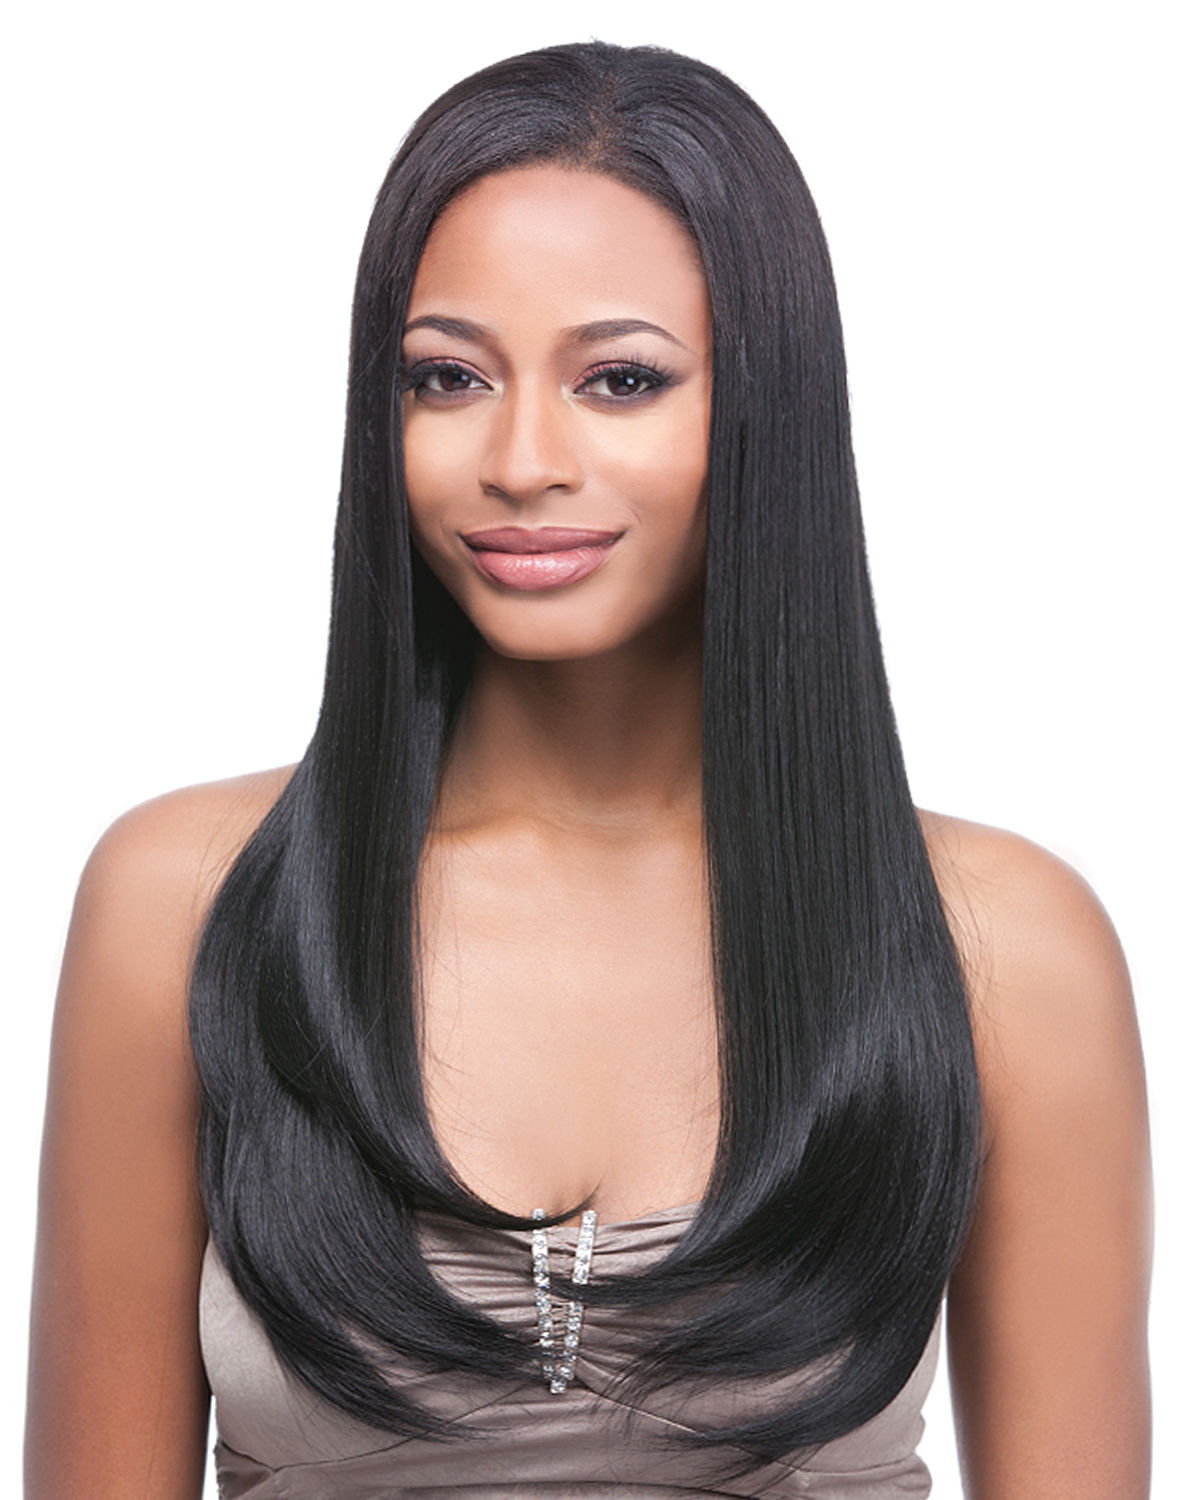 Abc Wigs Clip On J Curl 18 Synthetic Hair Extension By Its A Wig